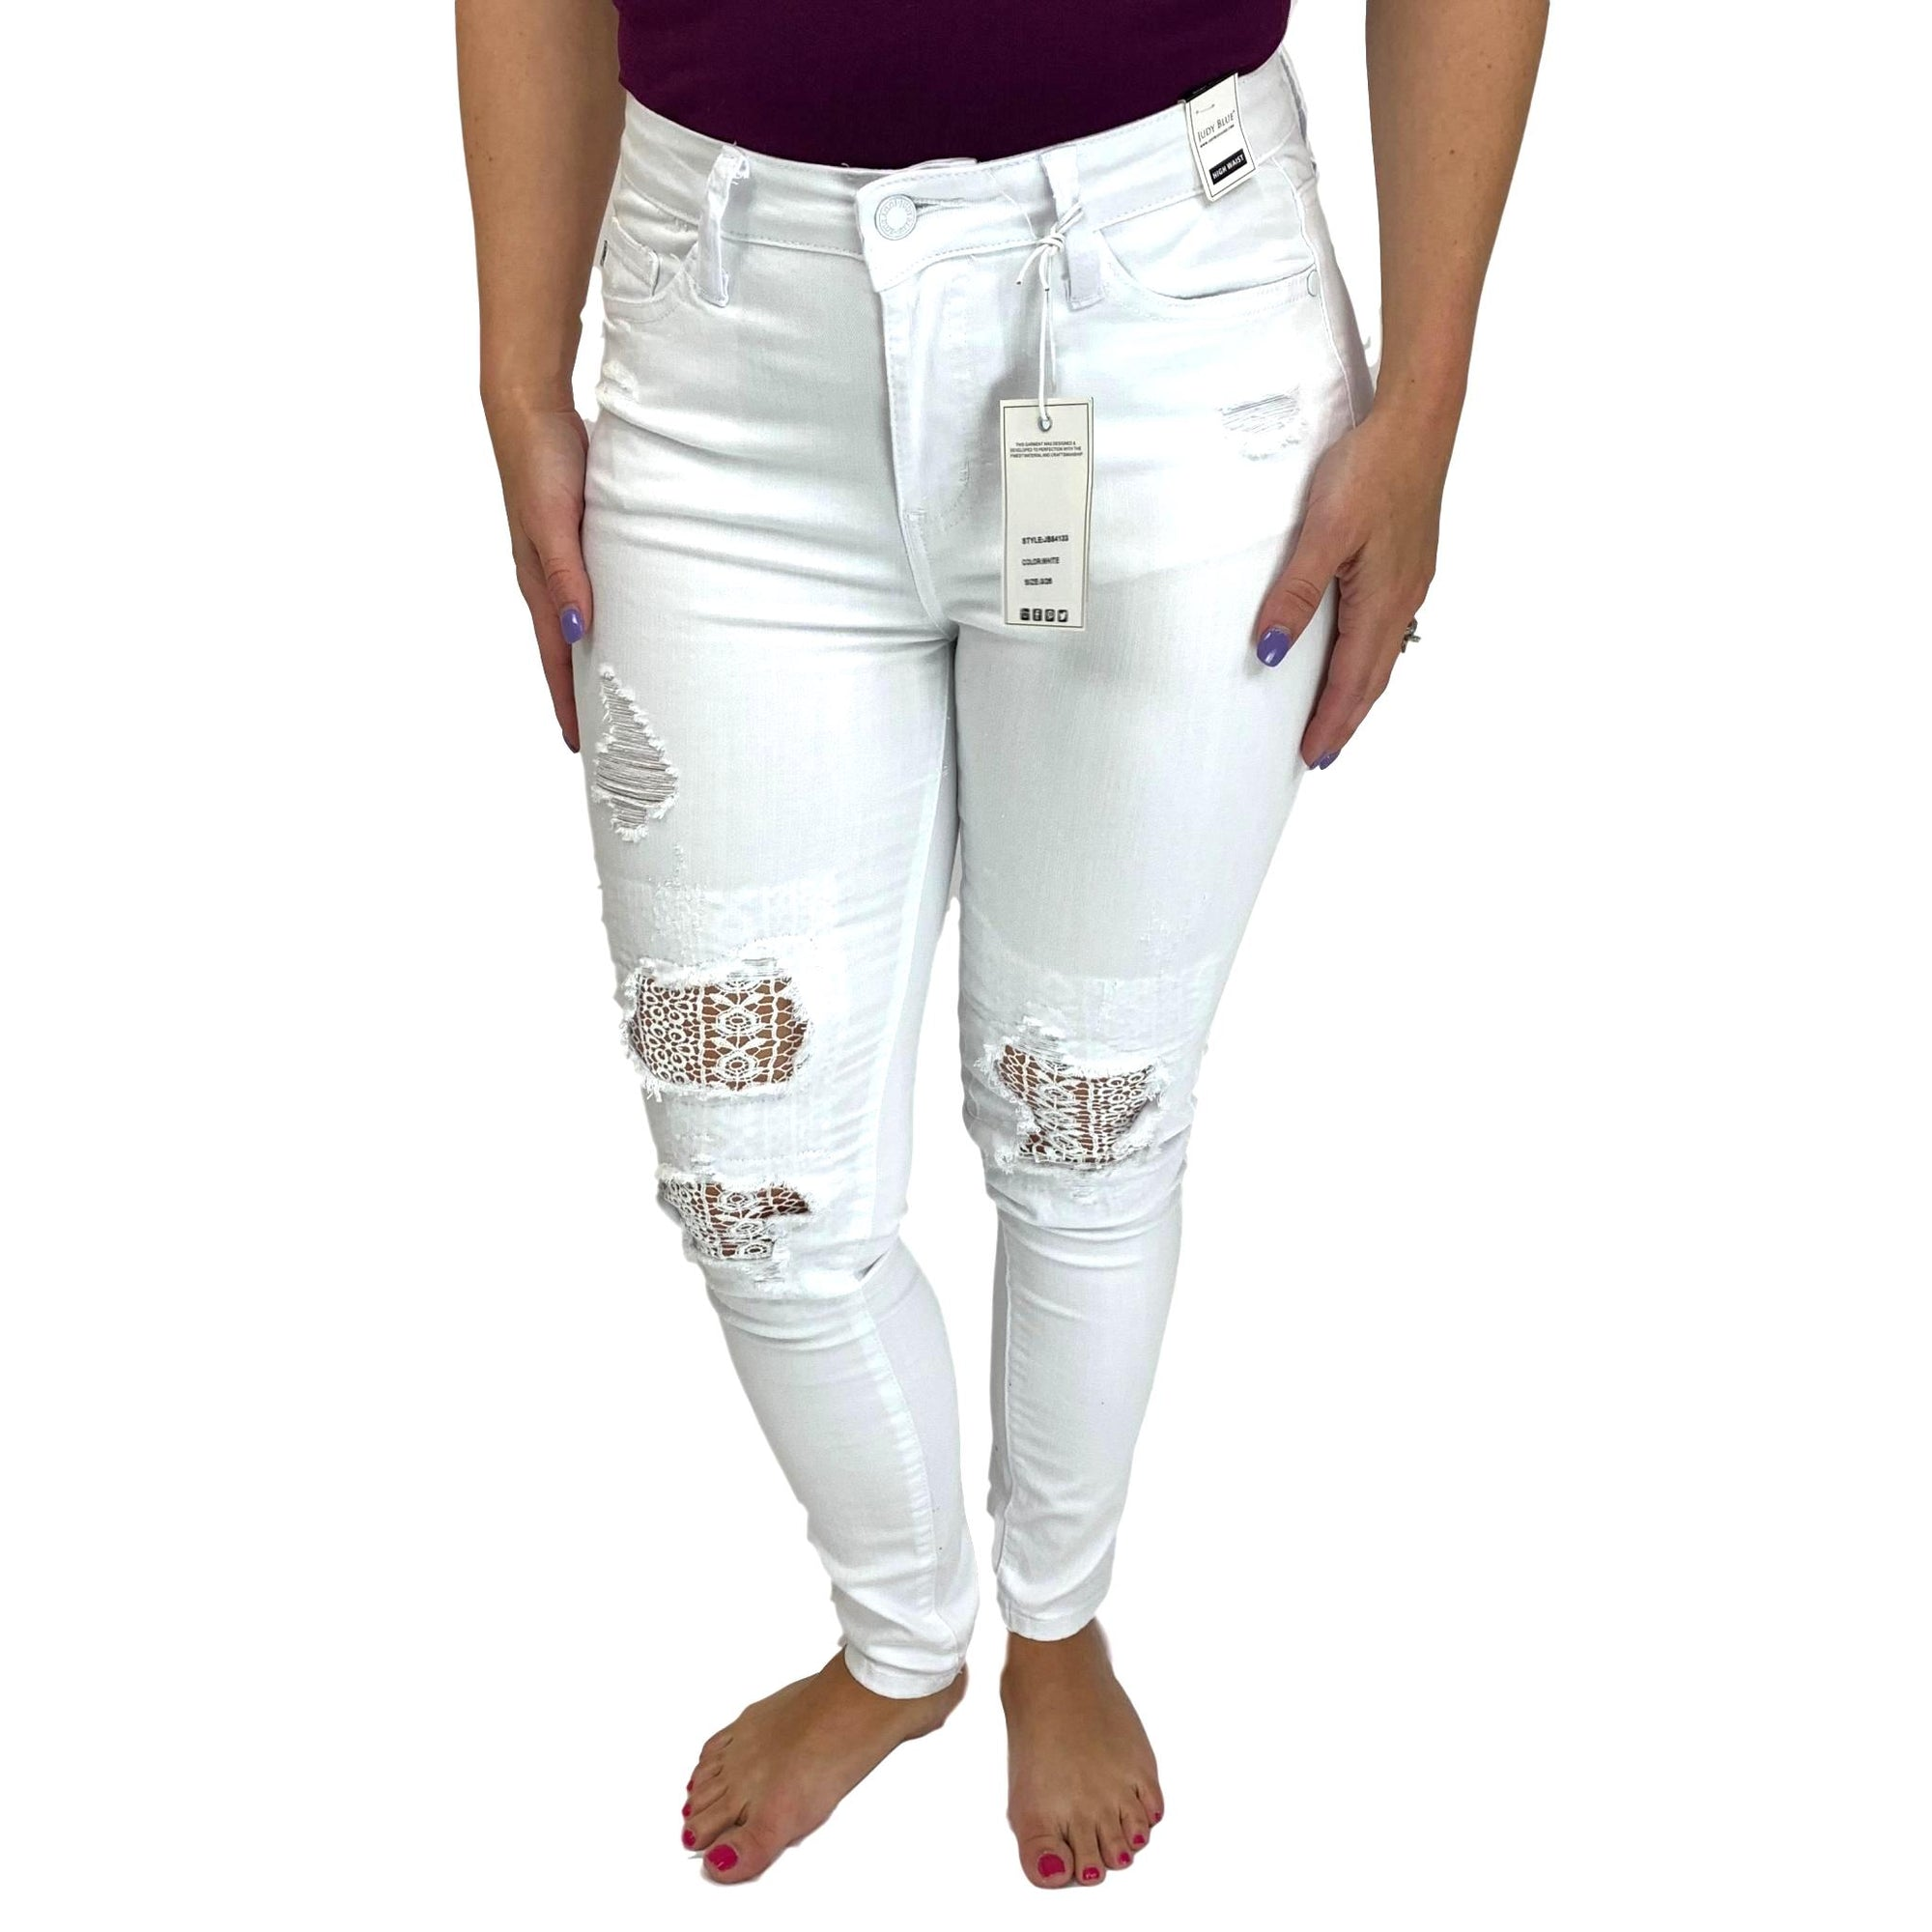 Judy Blue White Lace Patch Jeans